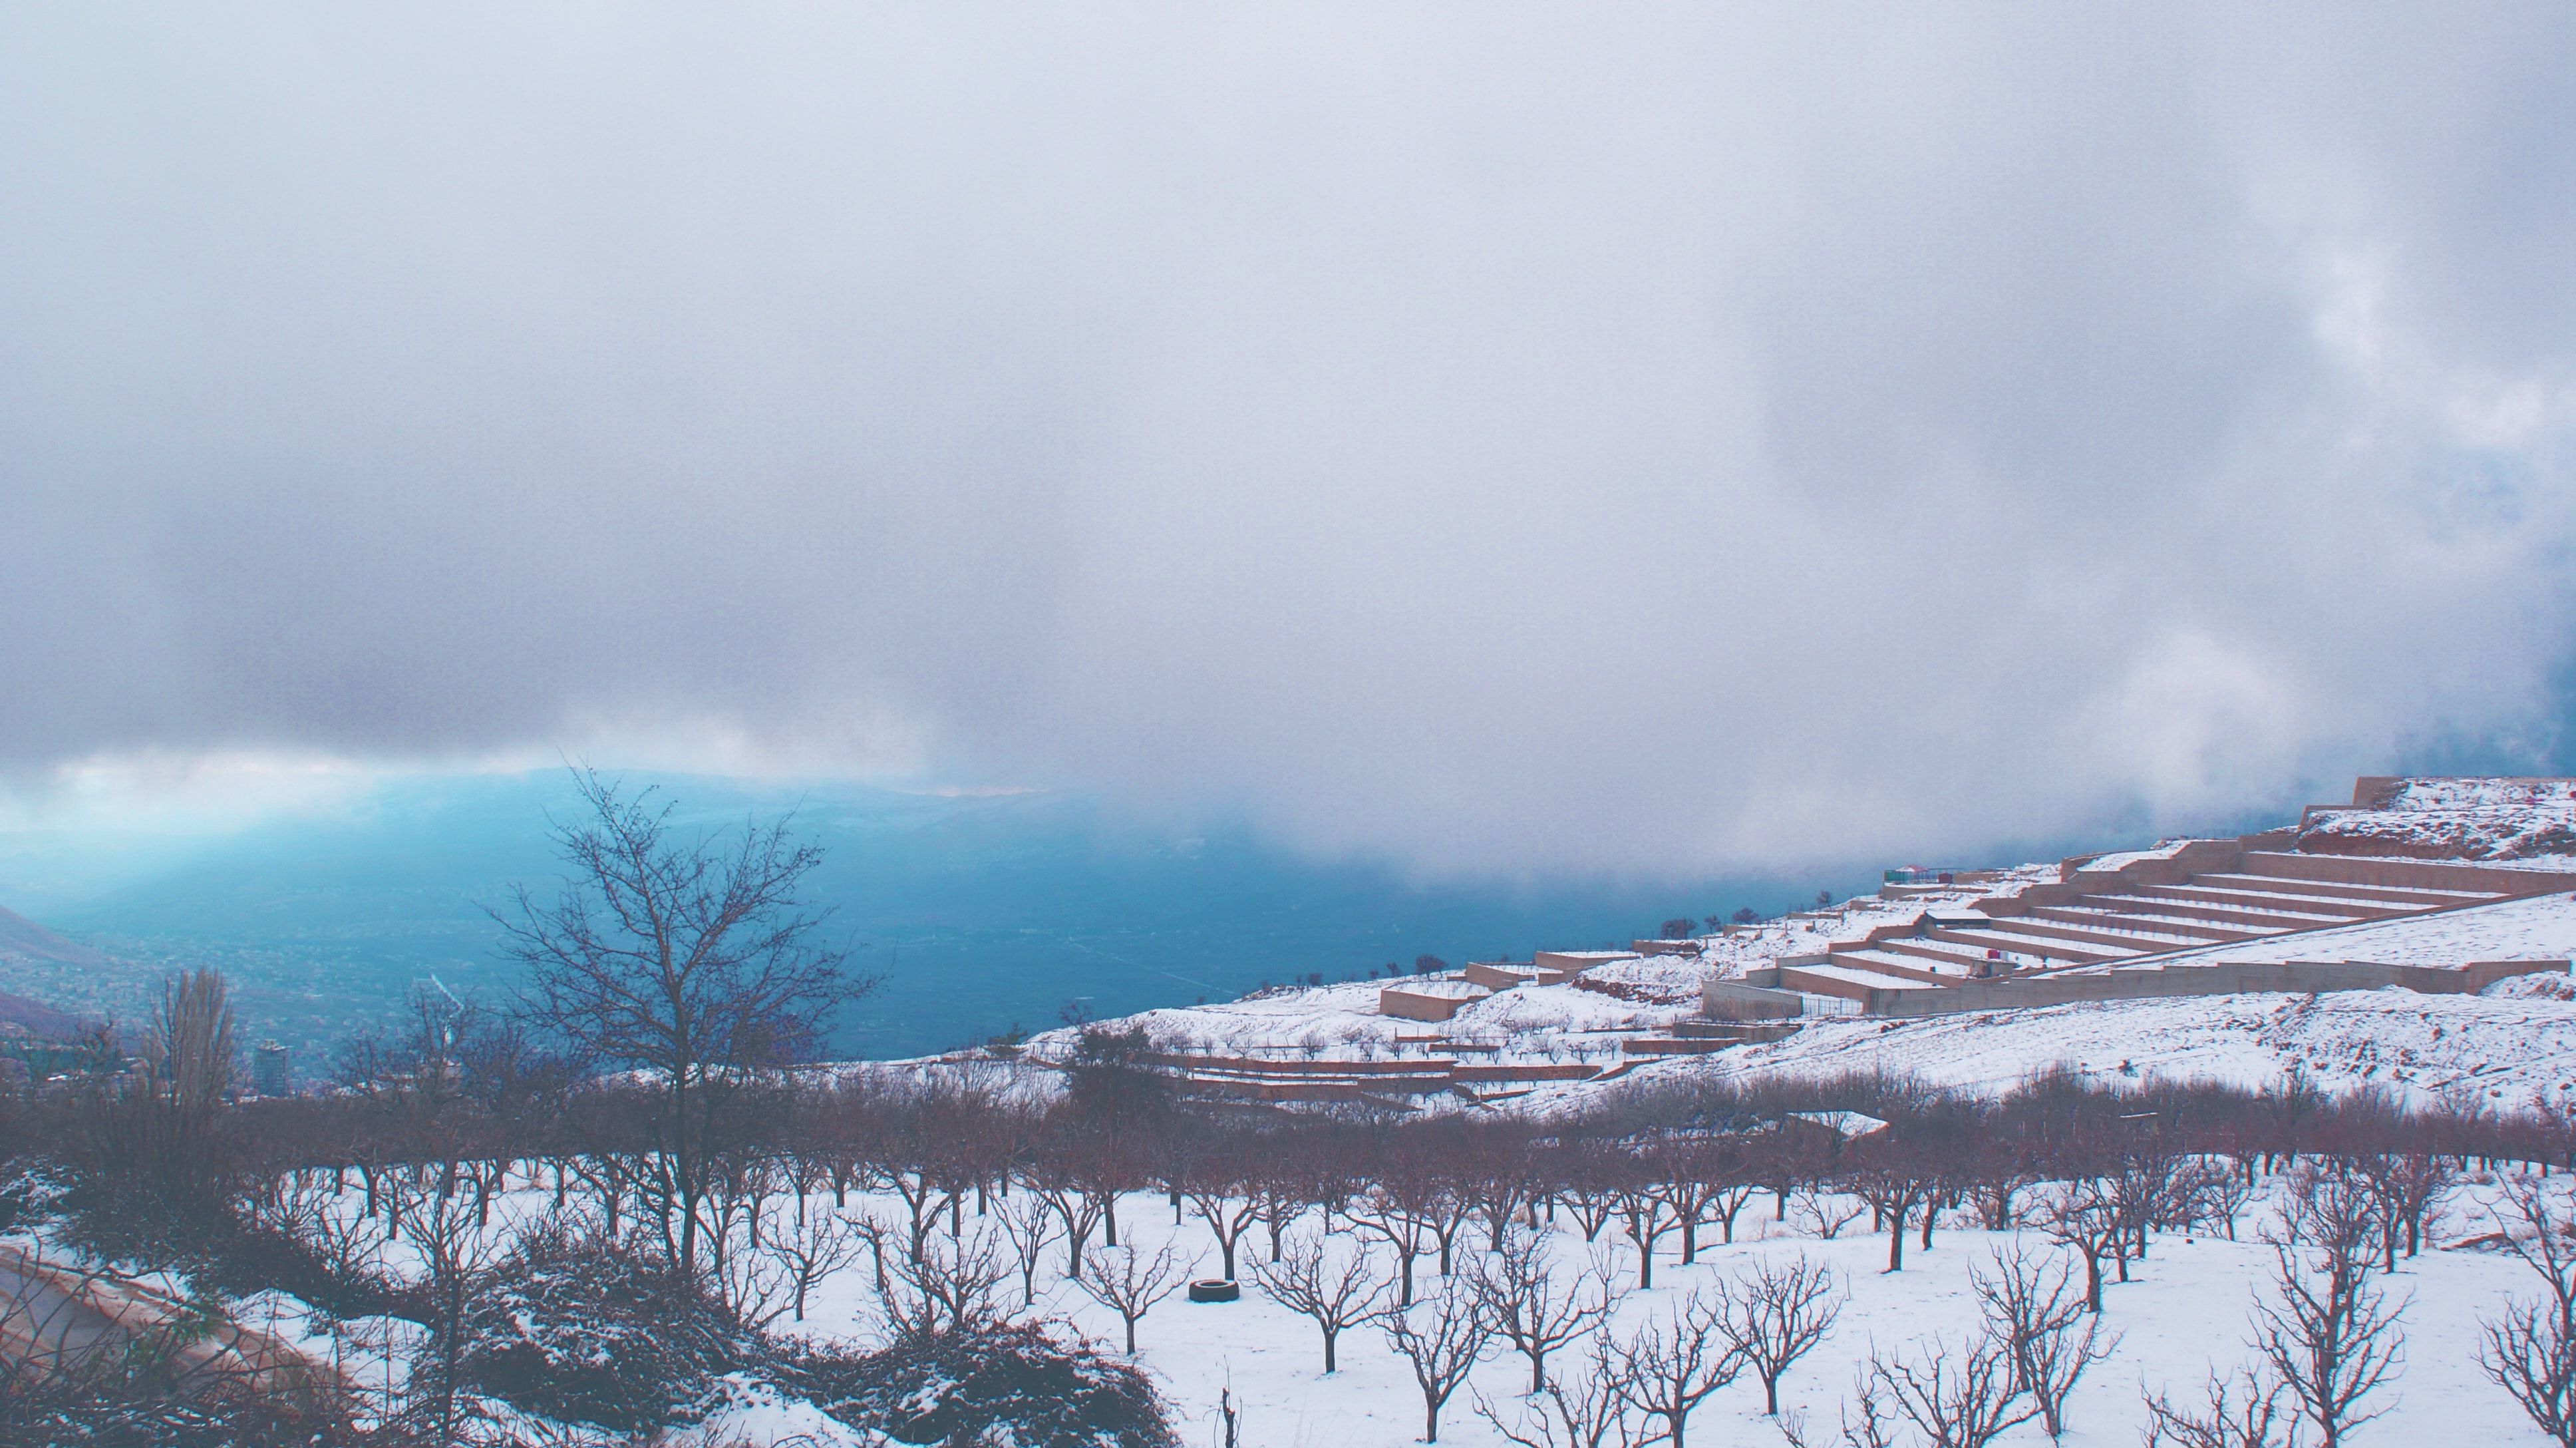 Clouds loom overhead while snow covers a terrace in Bloudan, Syria